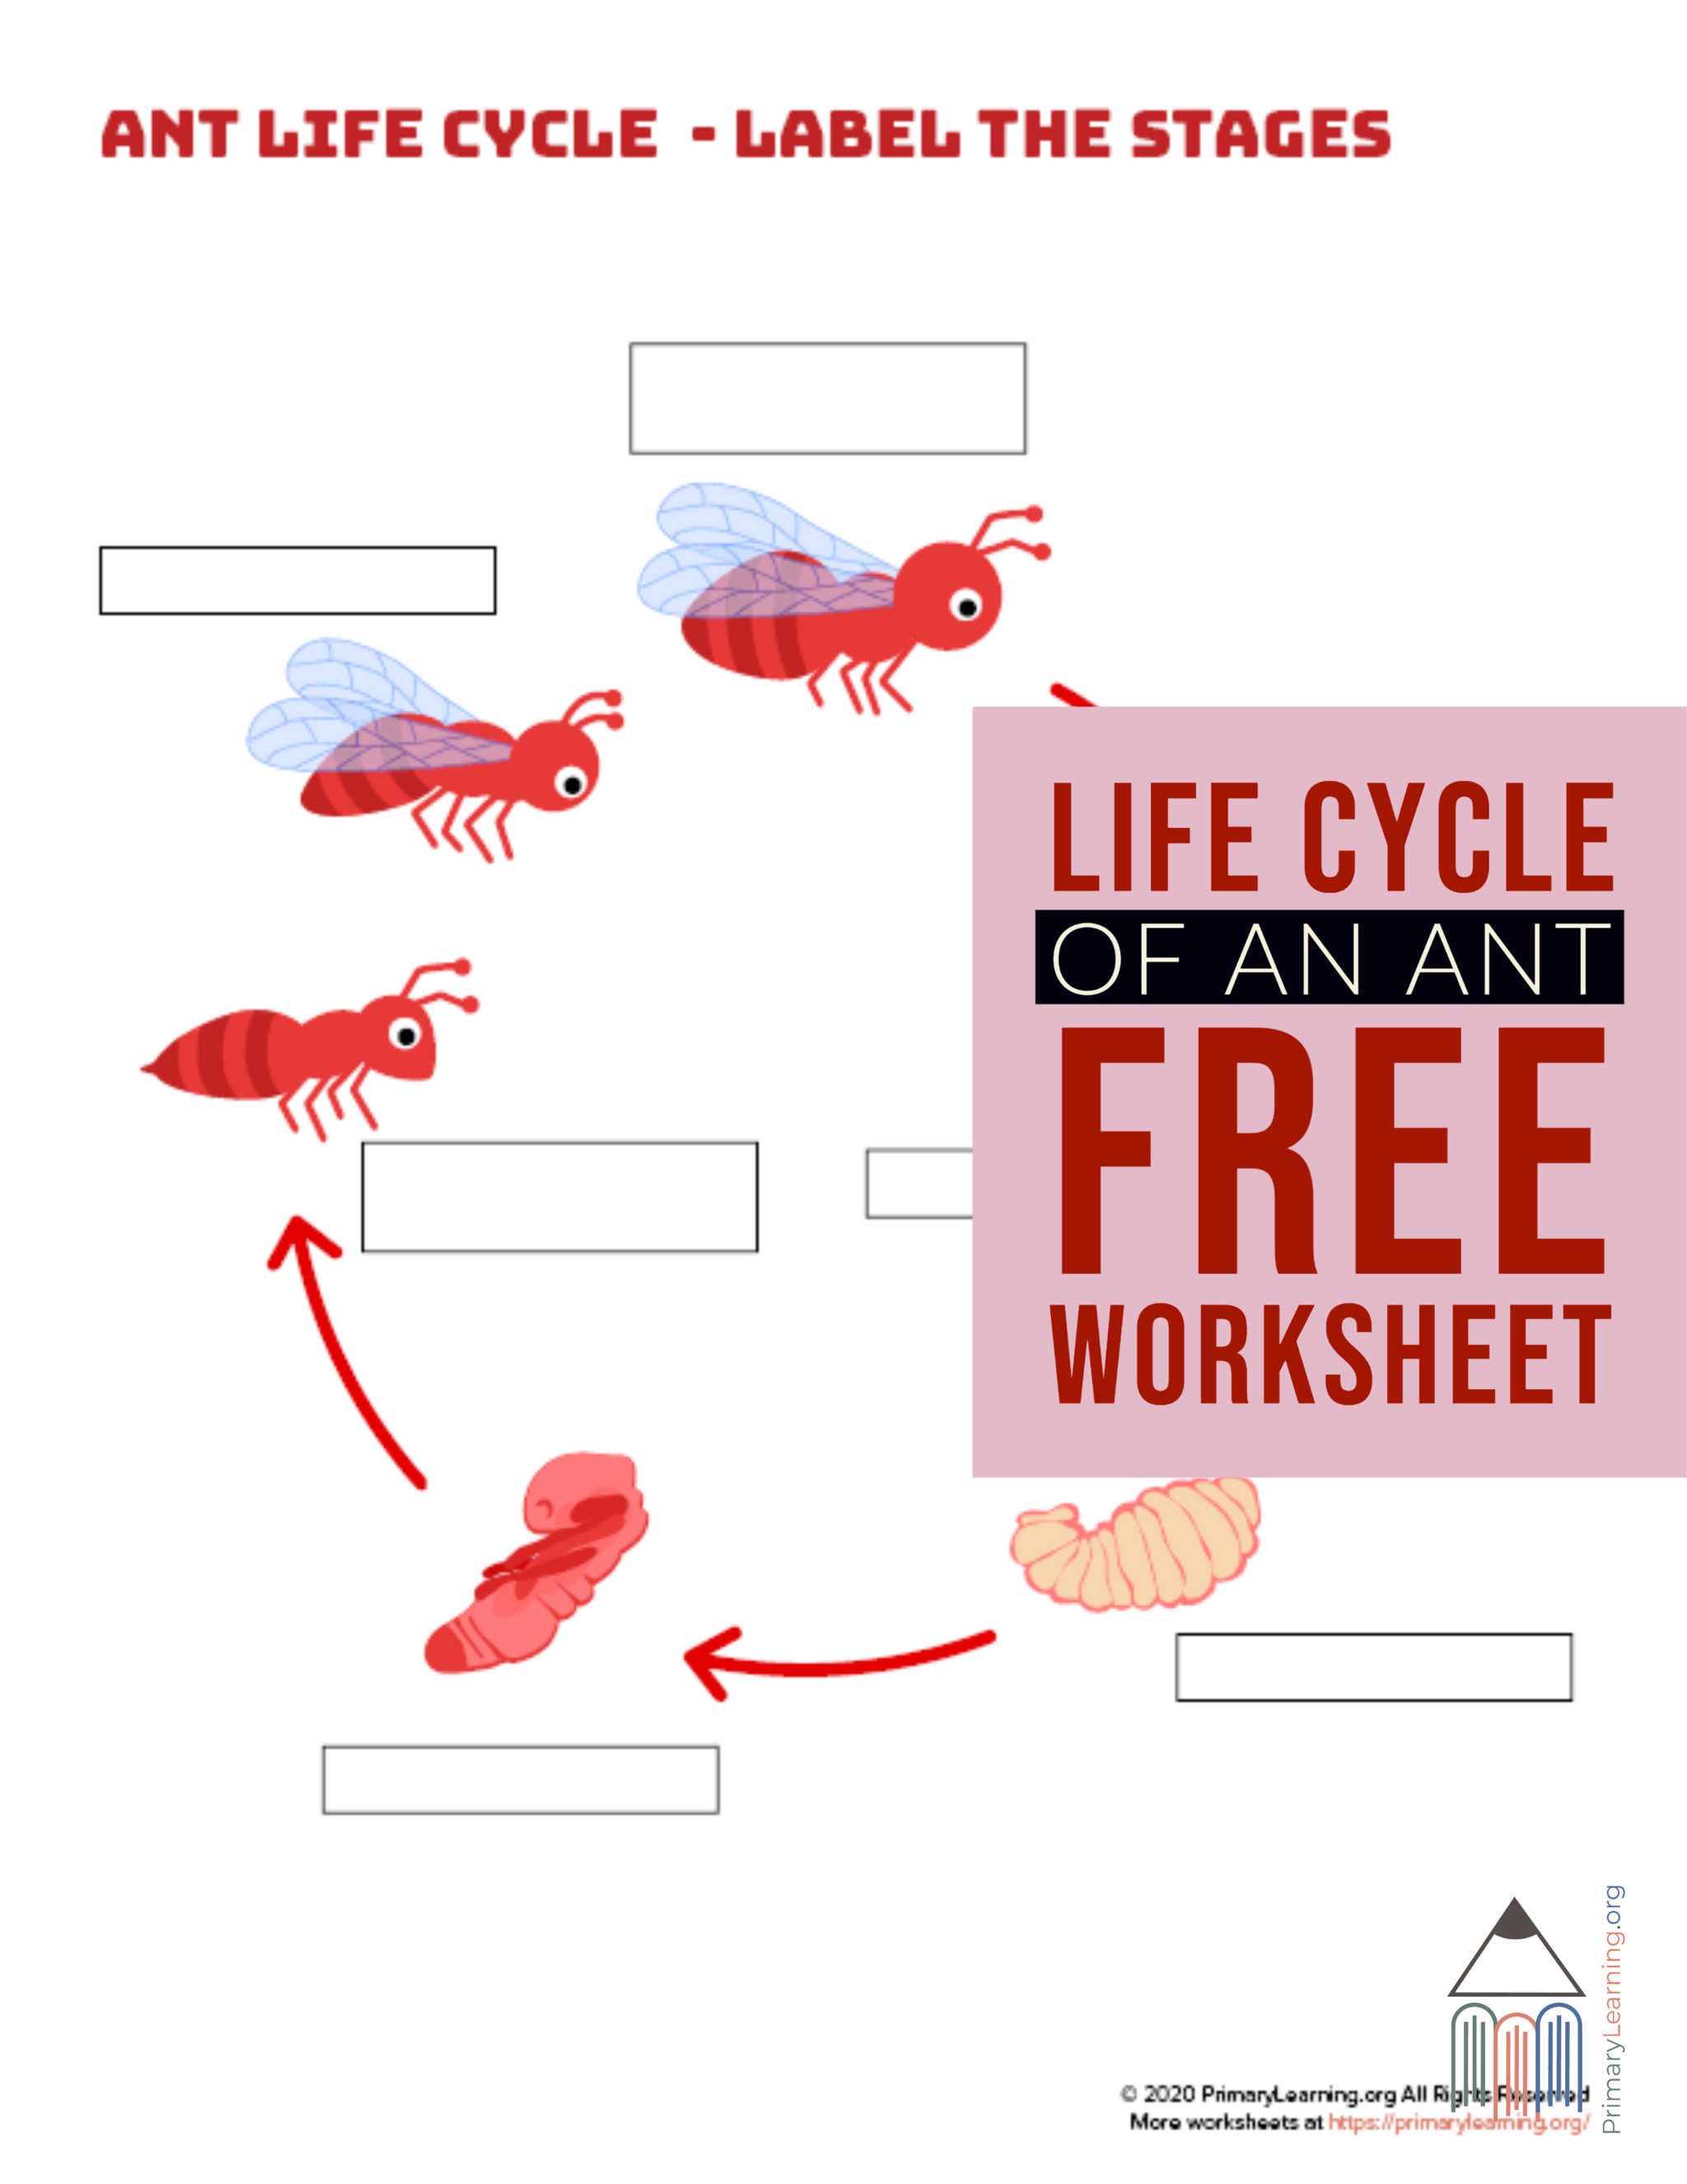 Students Use This Worksheet To Label The Stage Of Ant Life